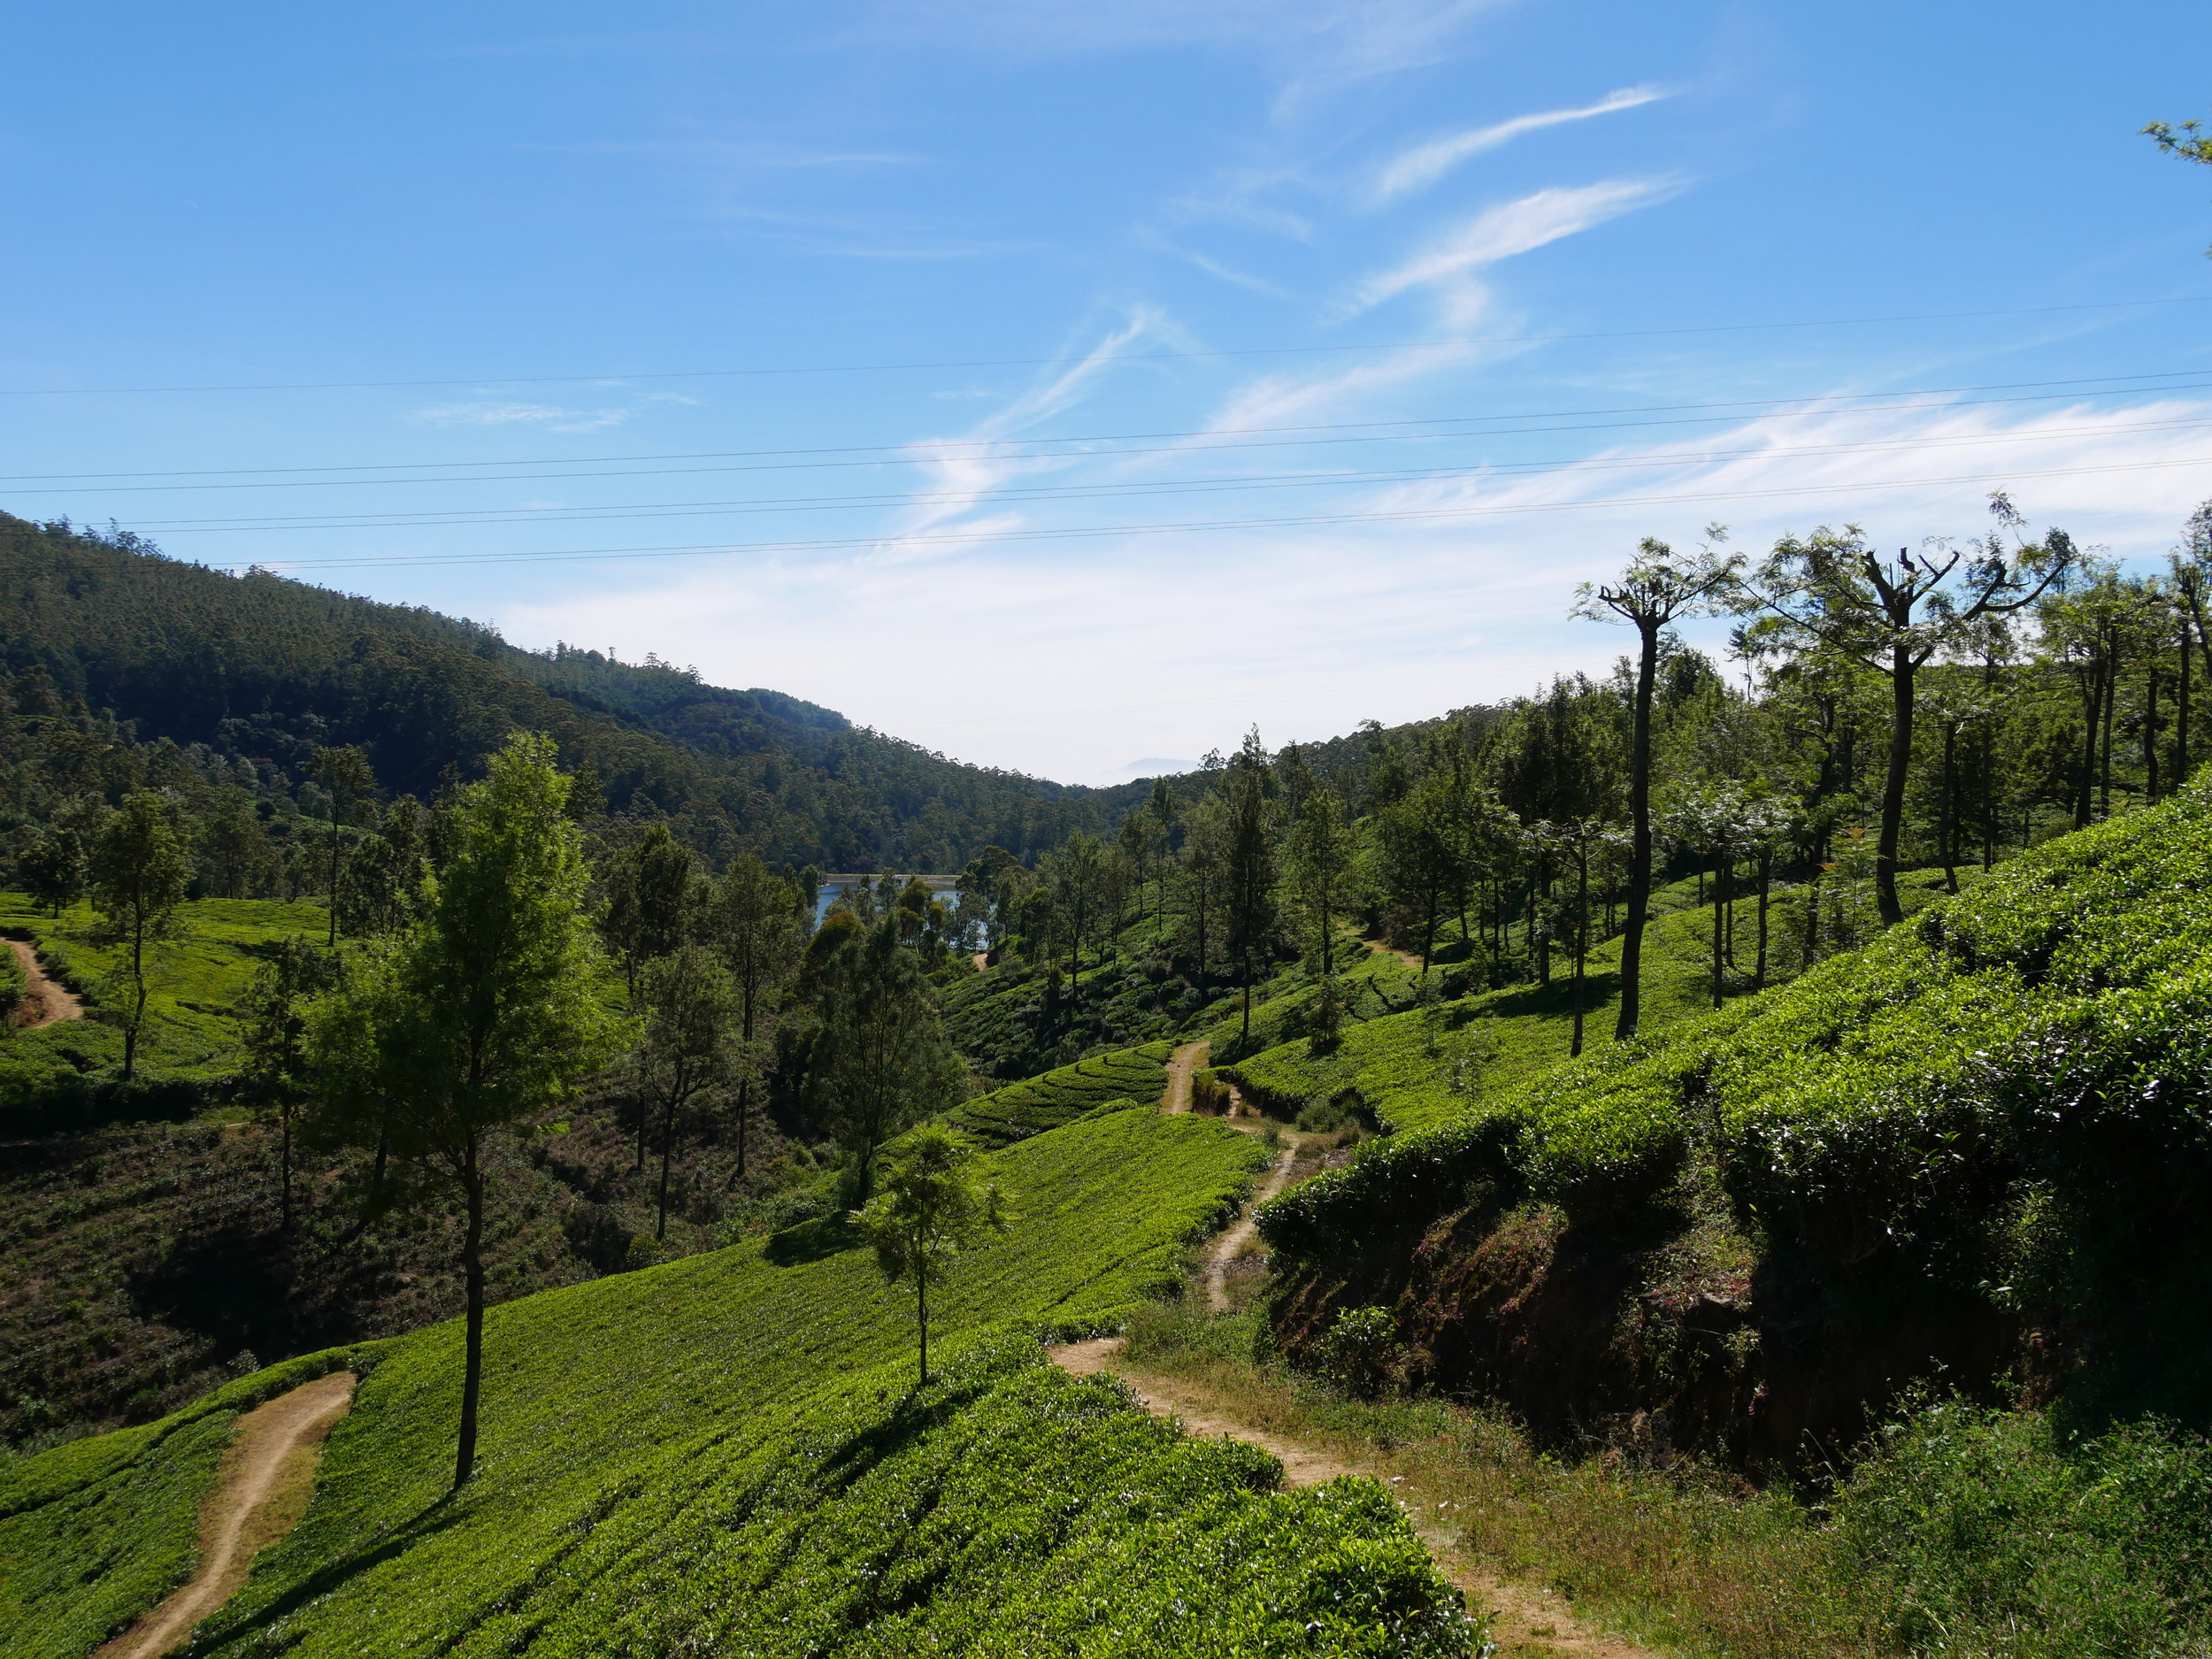 The view from Pedro's Tea Estate